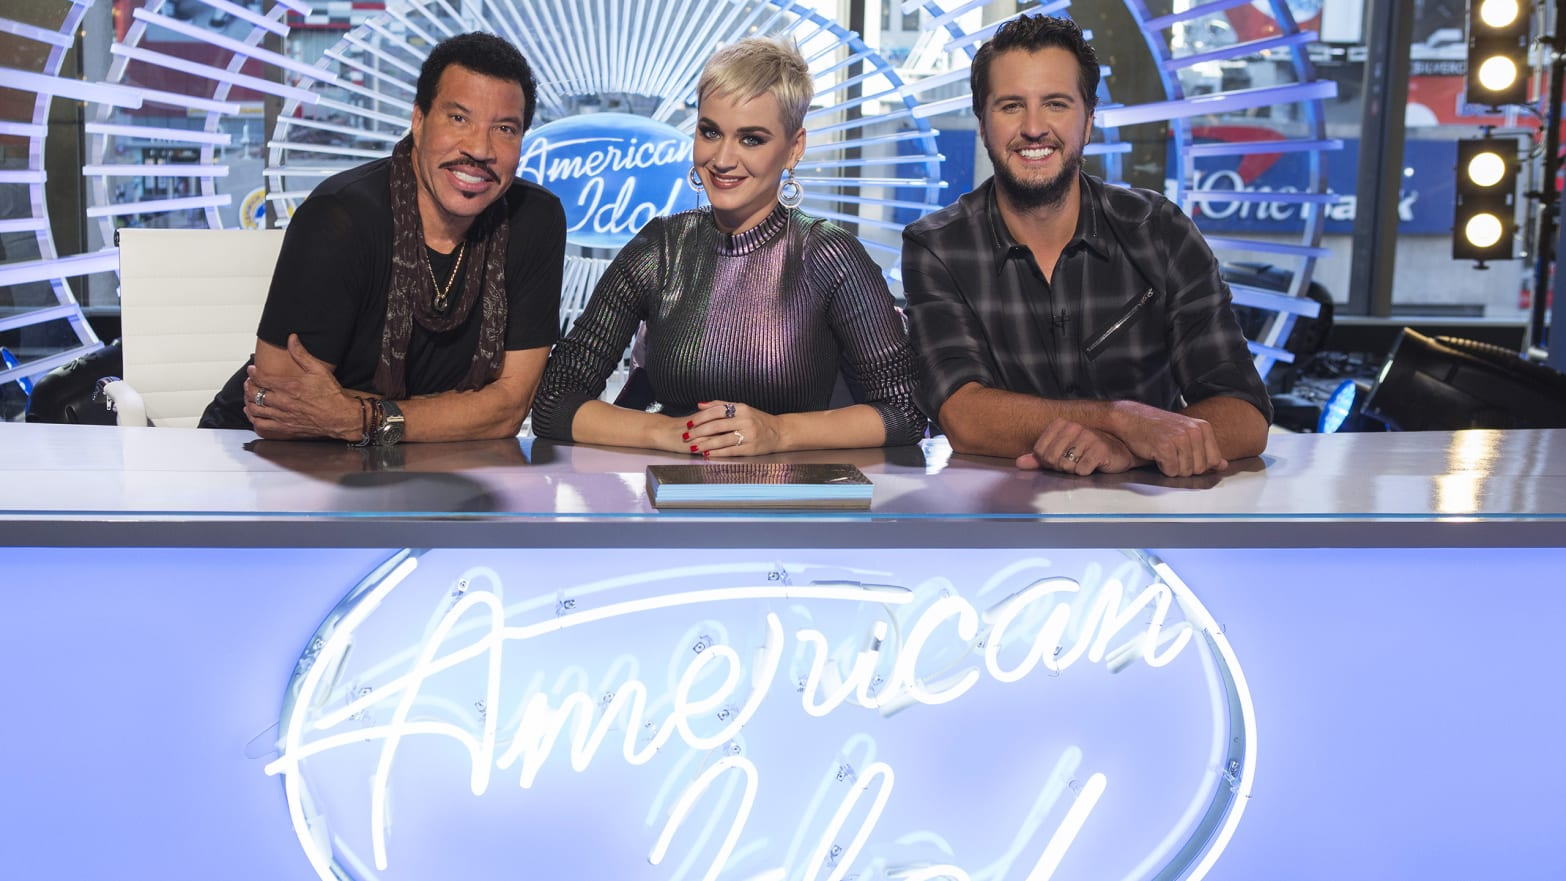 Not Even Katy Perry Can Bring American Idol Back From The Dead